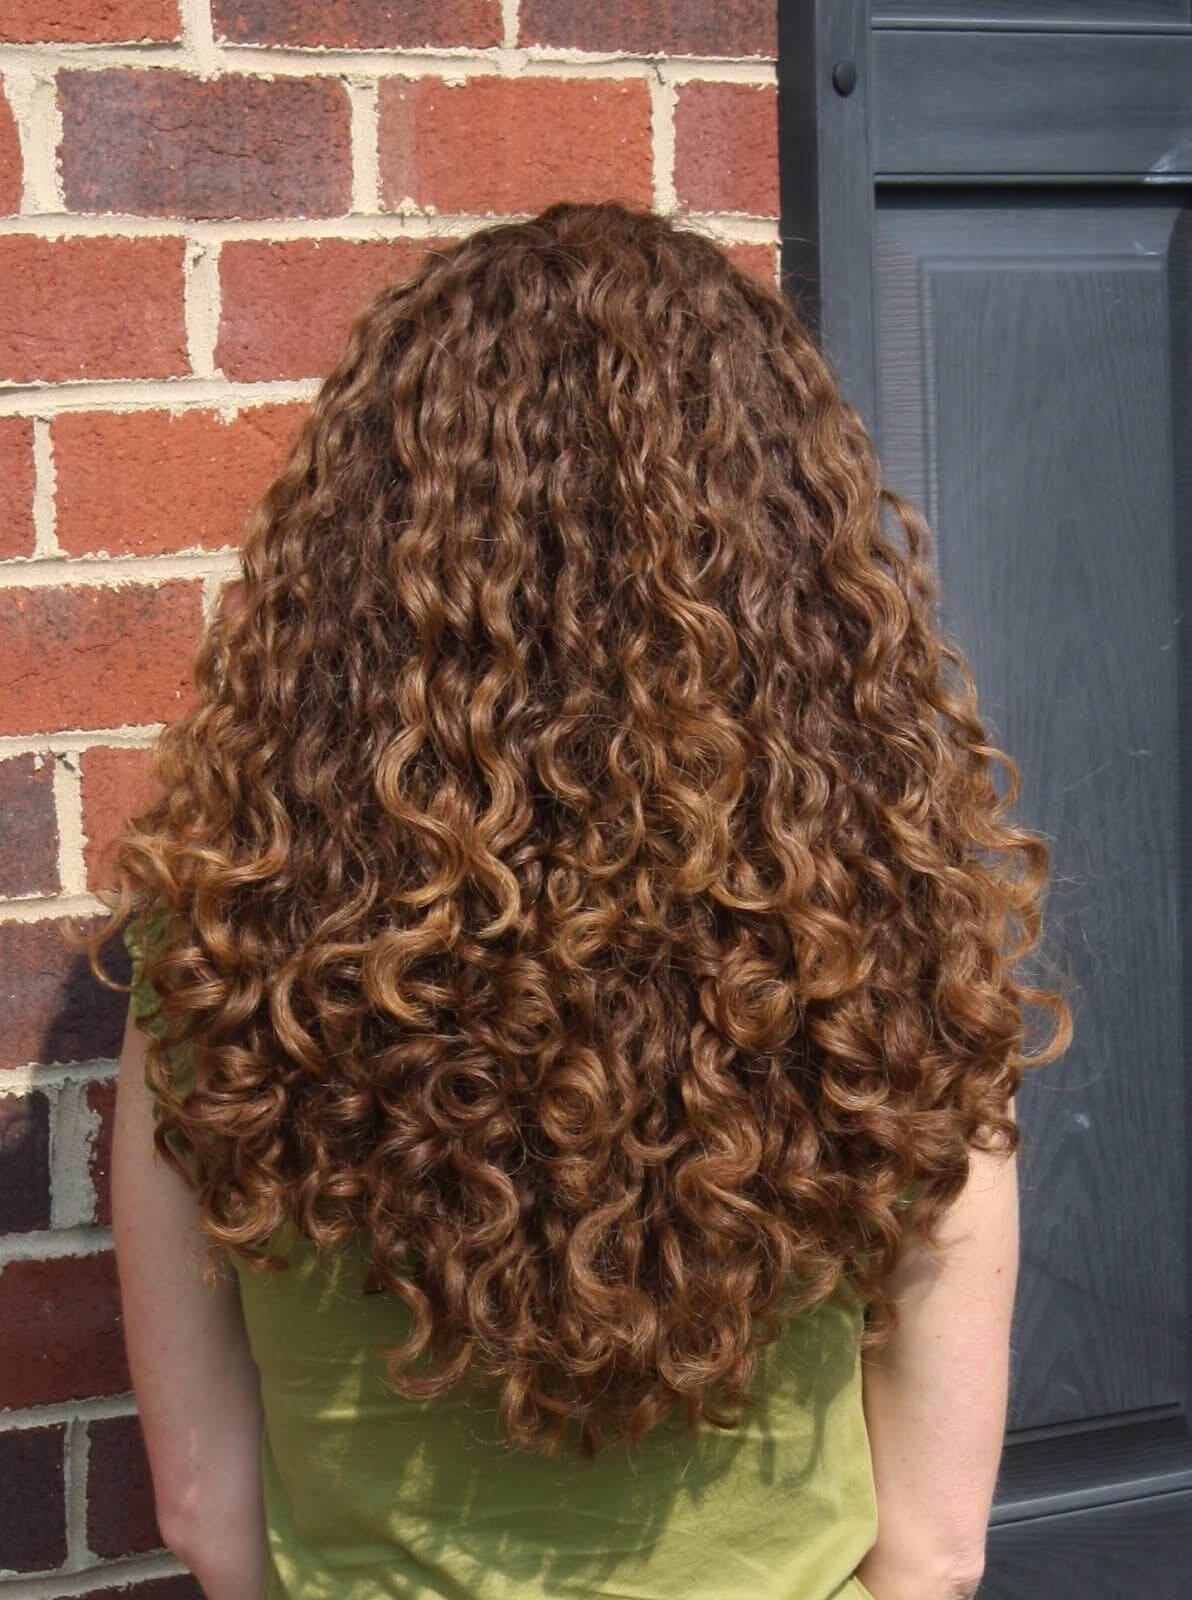 Layers are not limited to straight or wavy hair - see how this blogger's beautiful caramel brown curls are sculpted into a long, flattering style using layers.